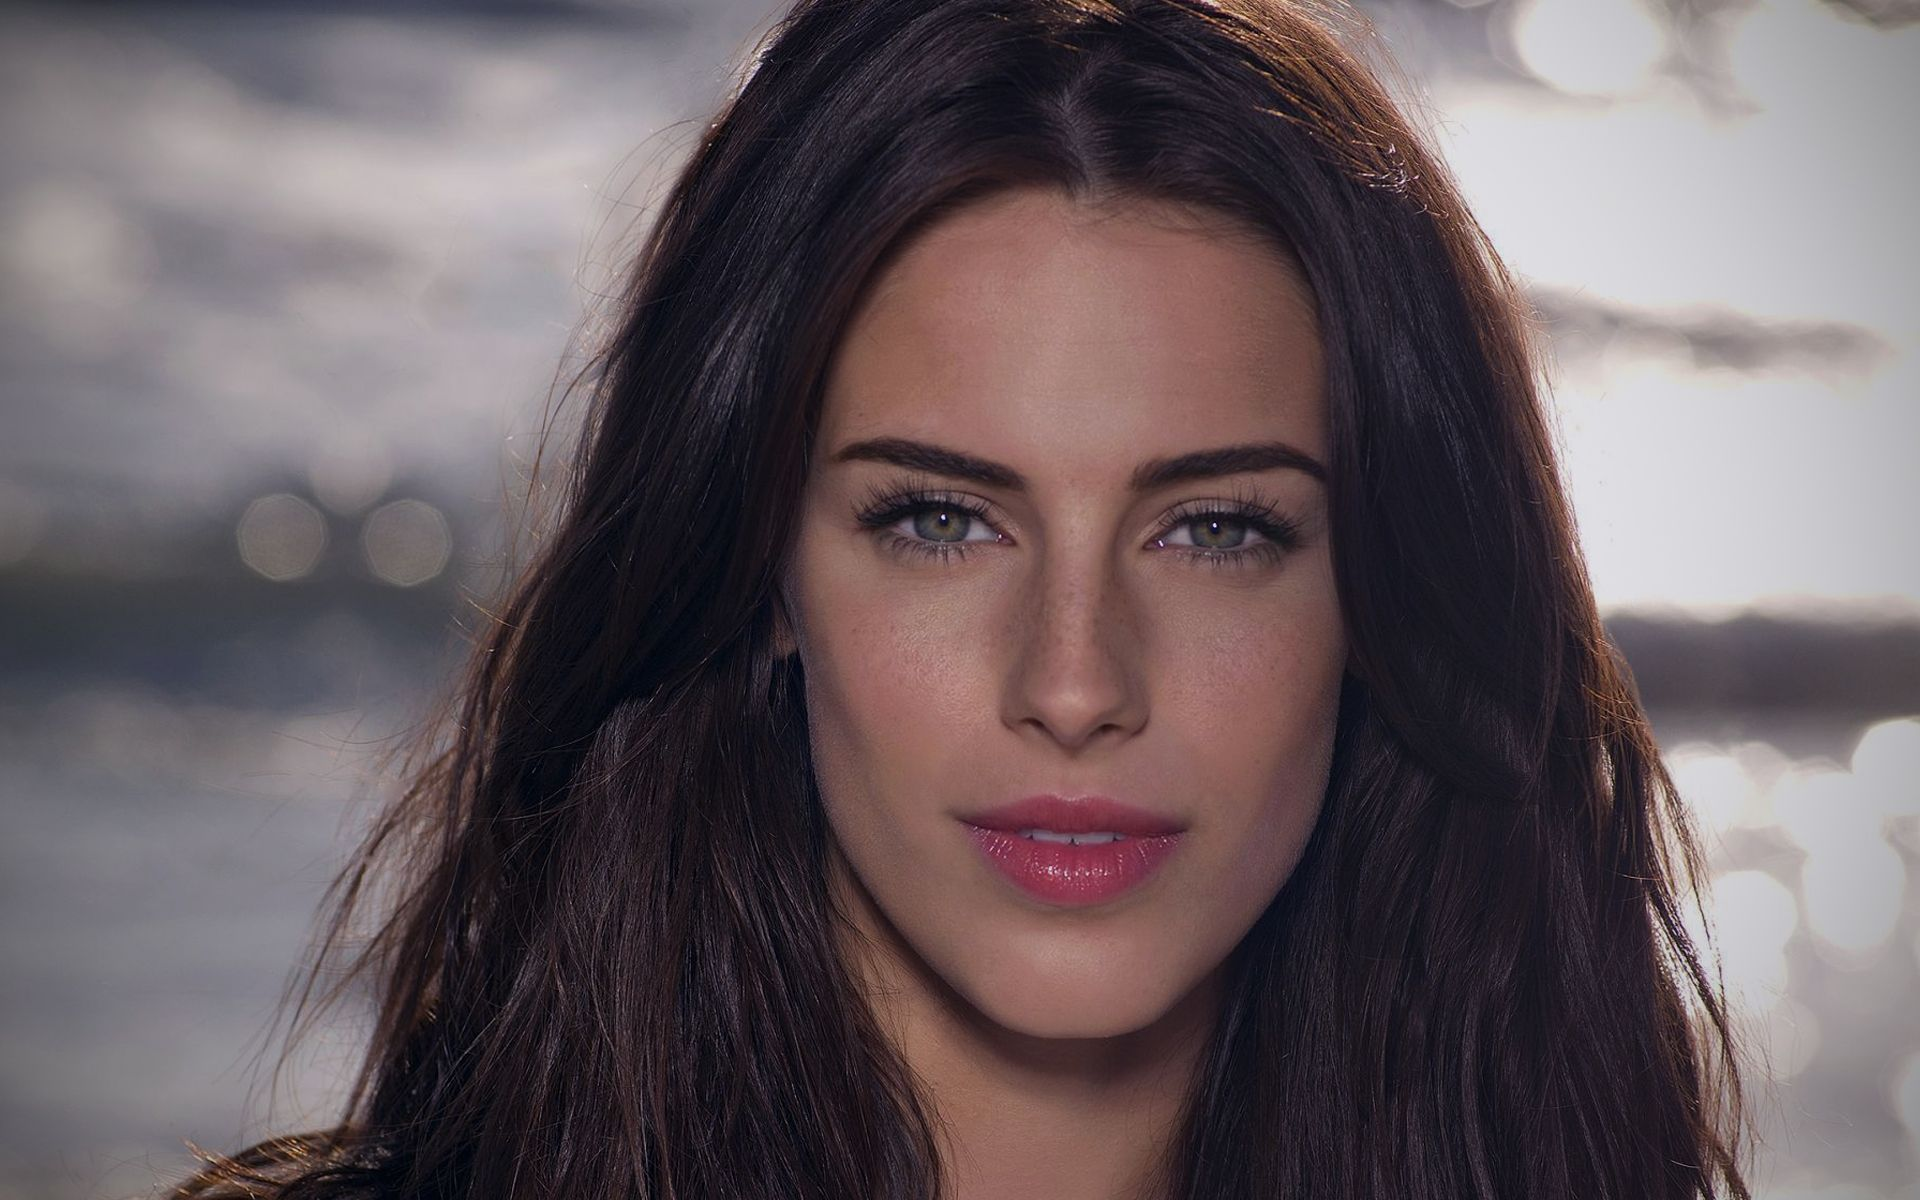 jessica lowndes stylejessica lowndes gif, jessica lowndes tumblr gif, jessica lowndes 2016, jessica lowndes фото, jessica lowndes listal, jessica lowndes source, jessica lowndes style, jessica lowndes dated, jessica lowndes makeup, jessica lowndes 90210, jessica lowndes saying goodbye, jessica lowndes png, jessica lowndes fool, jessica lowndes site, jessica lowndes wdw, jessica lowndes screencaps, jessica lowndes underneath the mask, jessica lowndes news, jessica lowndes blog, jessica lowndes interview